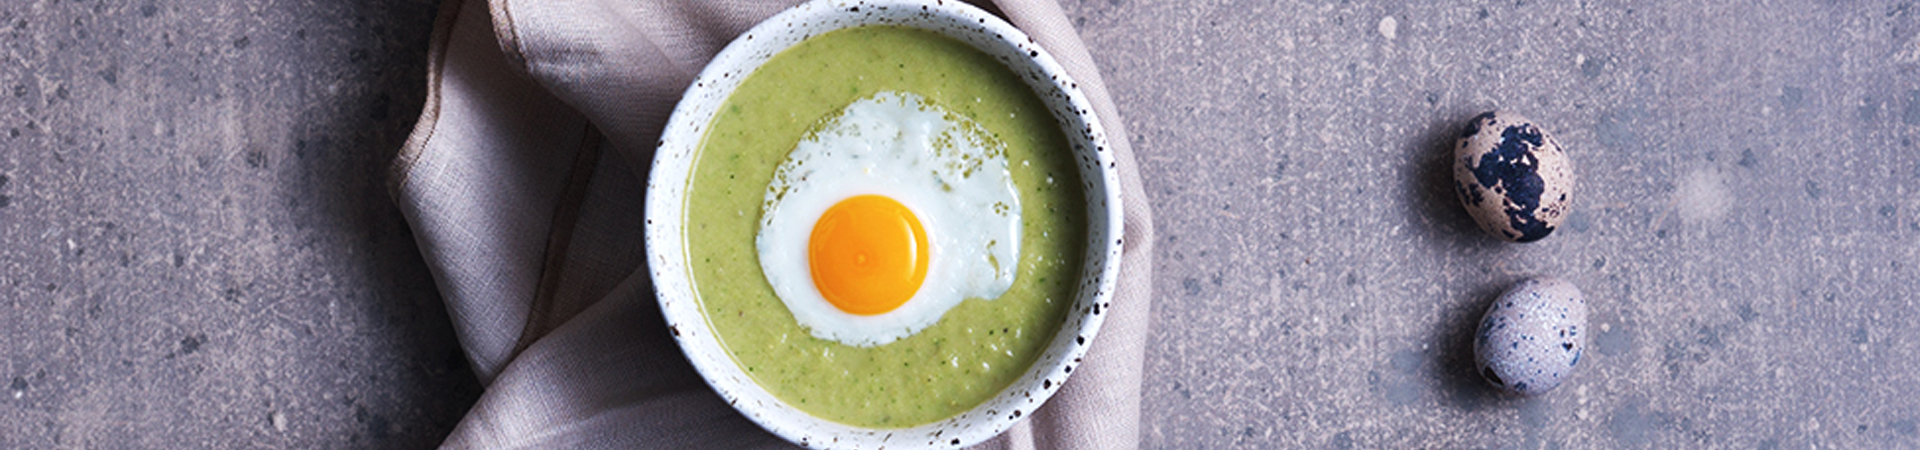 Cold Pea, Broccoli And Zucchini Soup | Eat Like A Pro